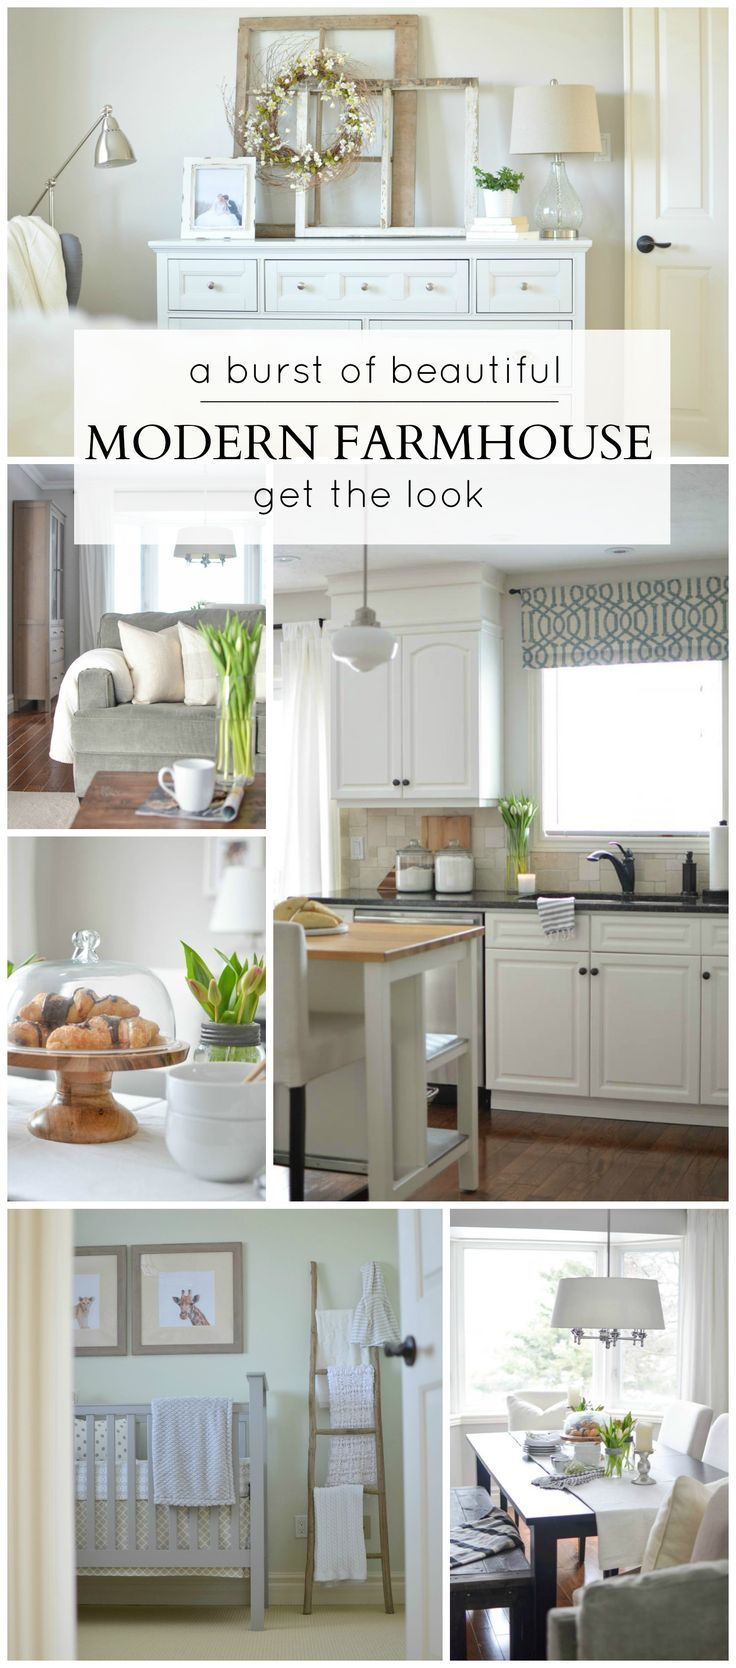 Get The Look Of This Beautiful Modern Farmhouse  A Burst Of Beautiful